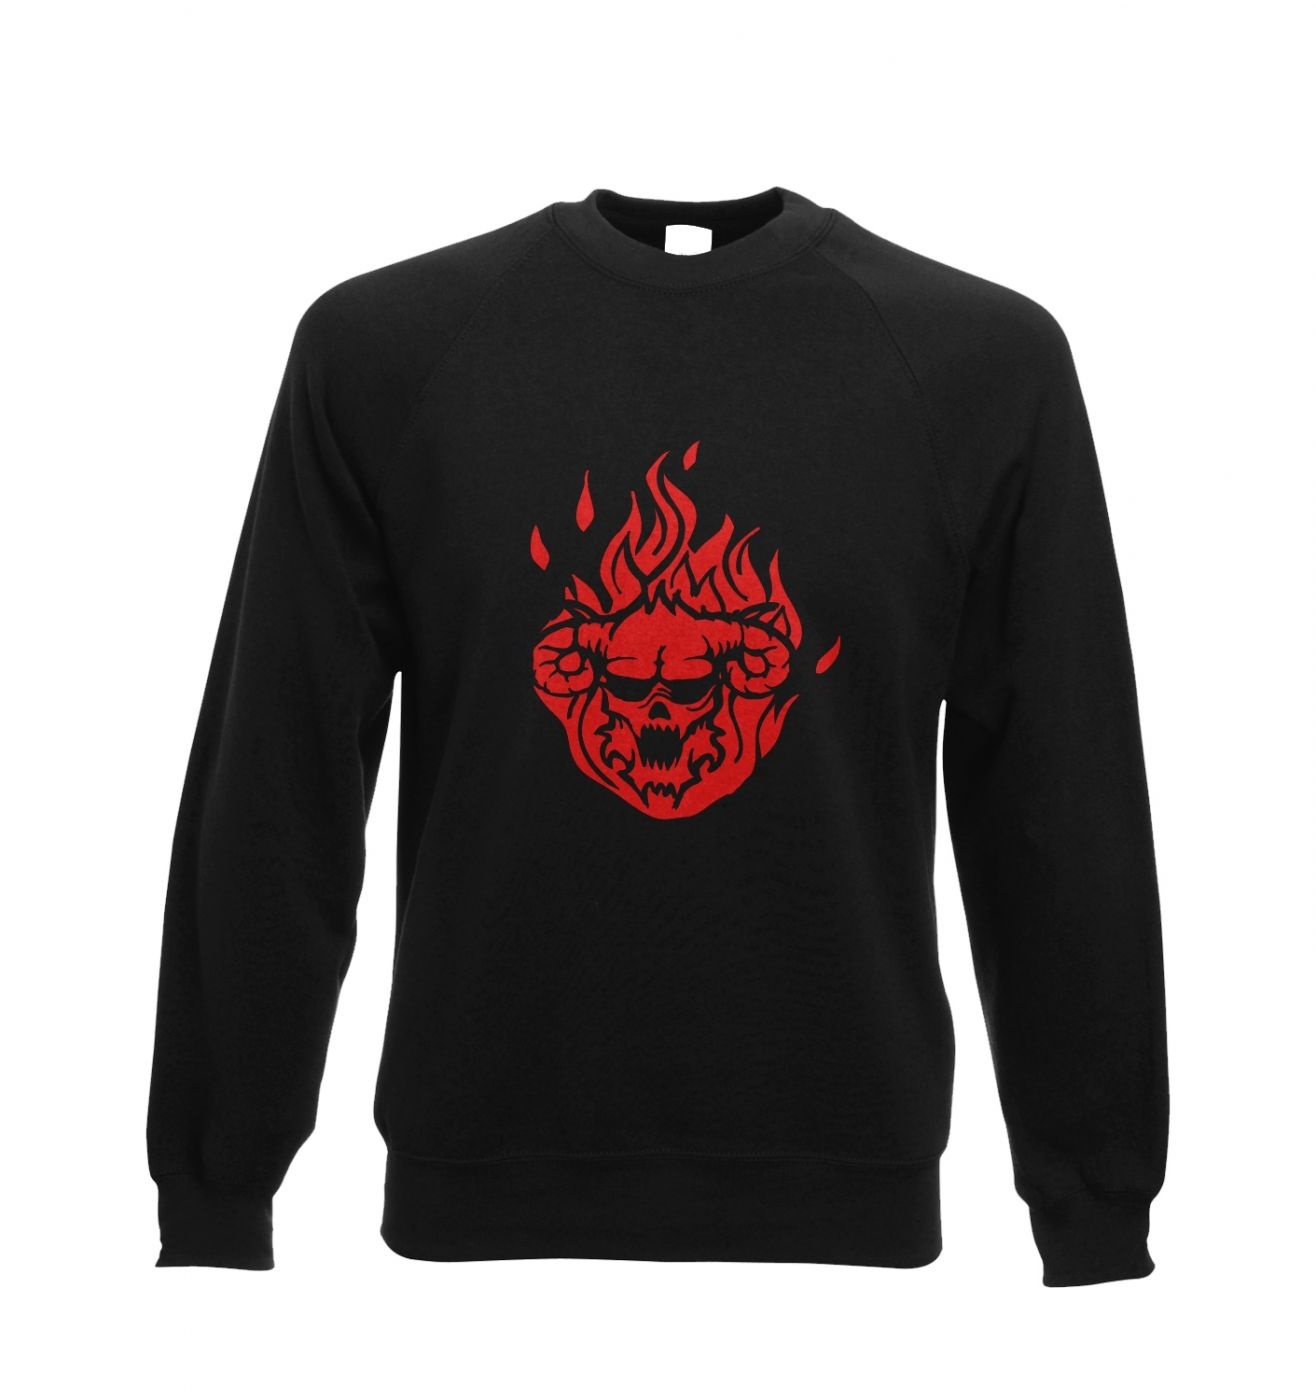 Flaming Demon's Head crewneck sweatshirt